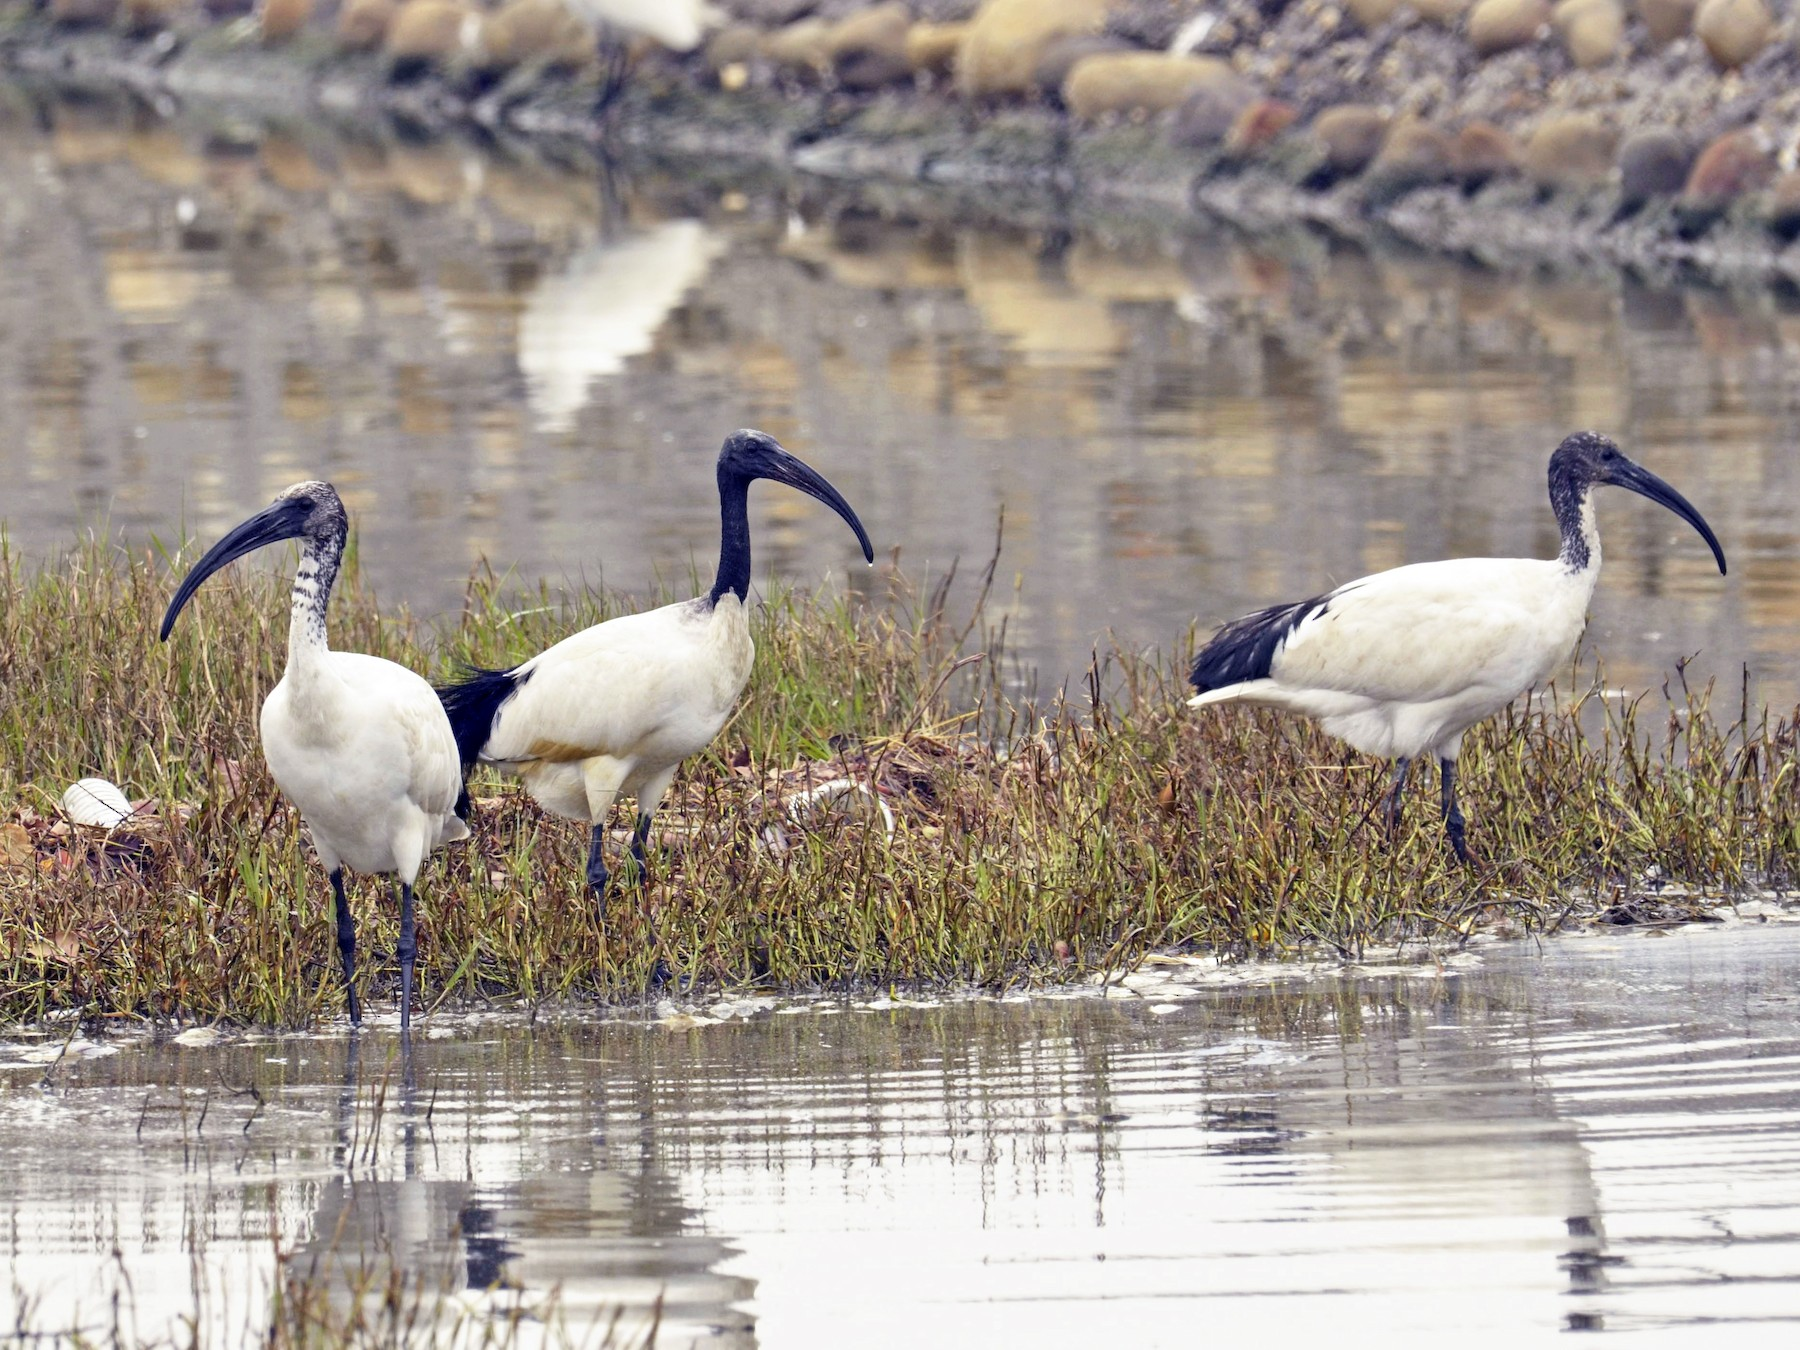 African Sacred Ibis - 智偉(Chih-Wei) 張(Chang)